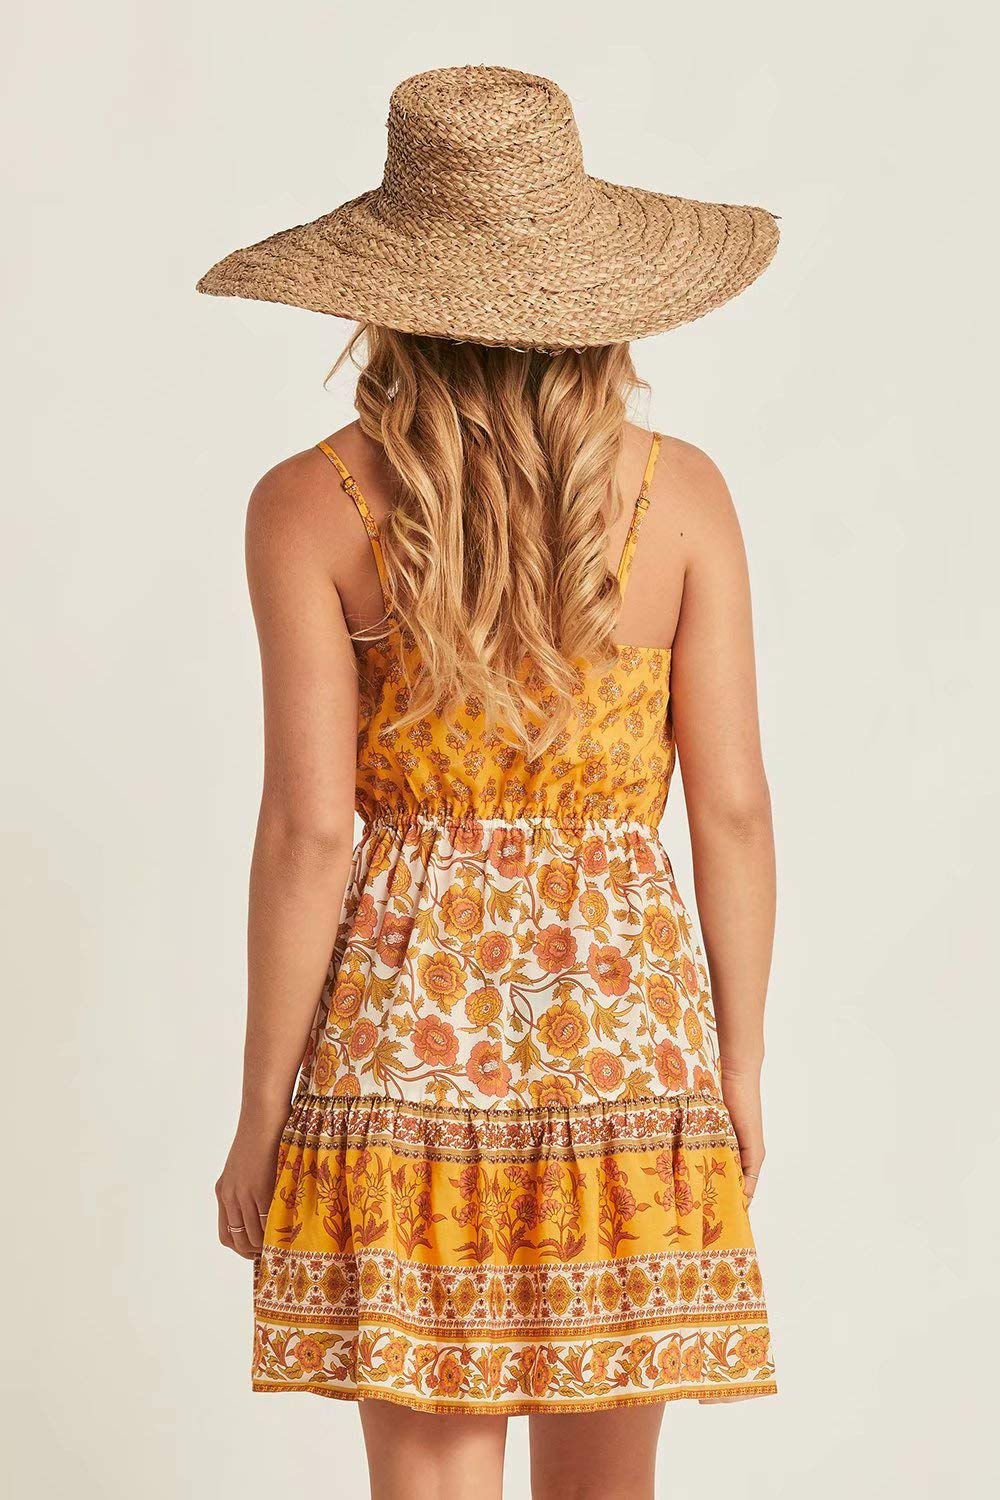 OBERORA Summer Dress for Women Casual Spaghetti Strap Floral Backless Button Up Bohemian Dresses for Women Short